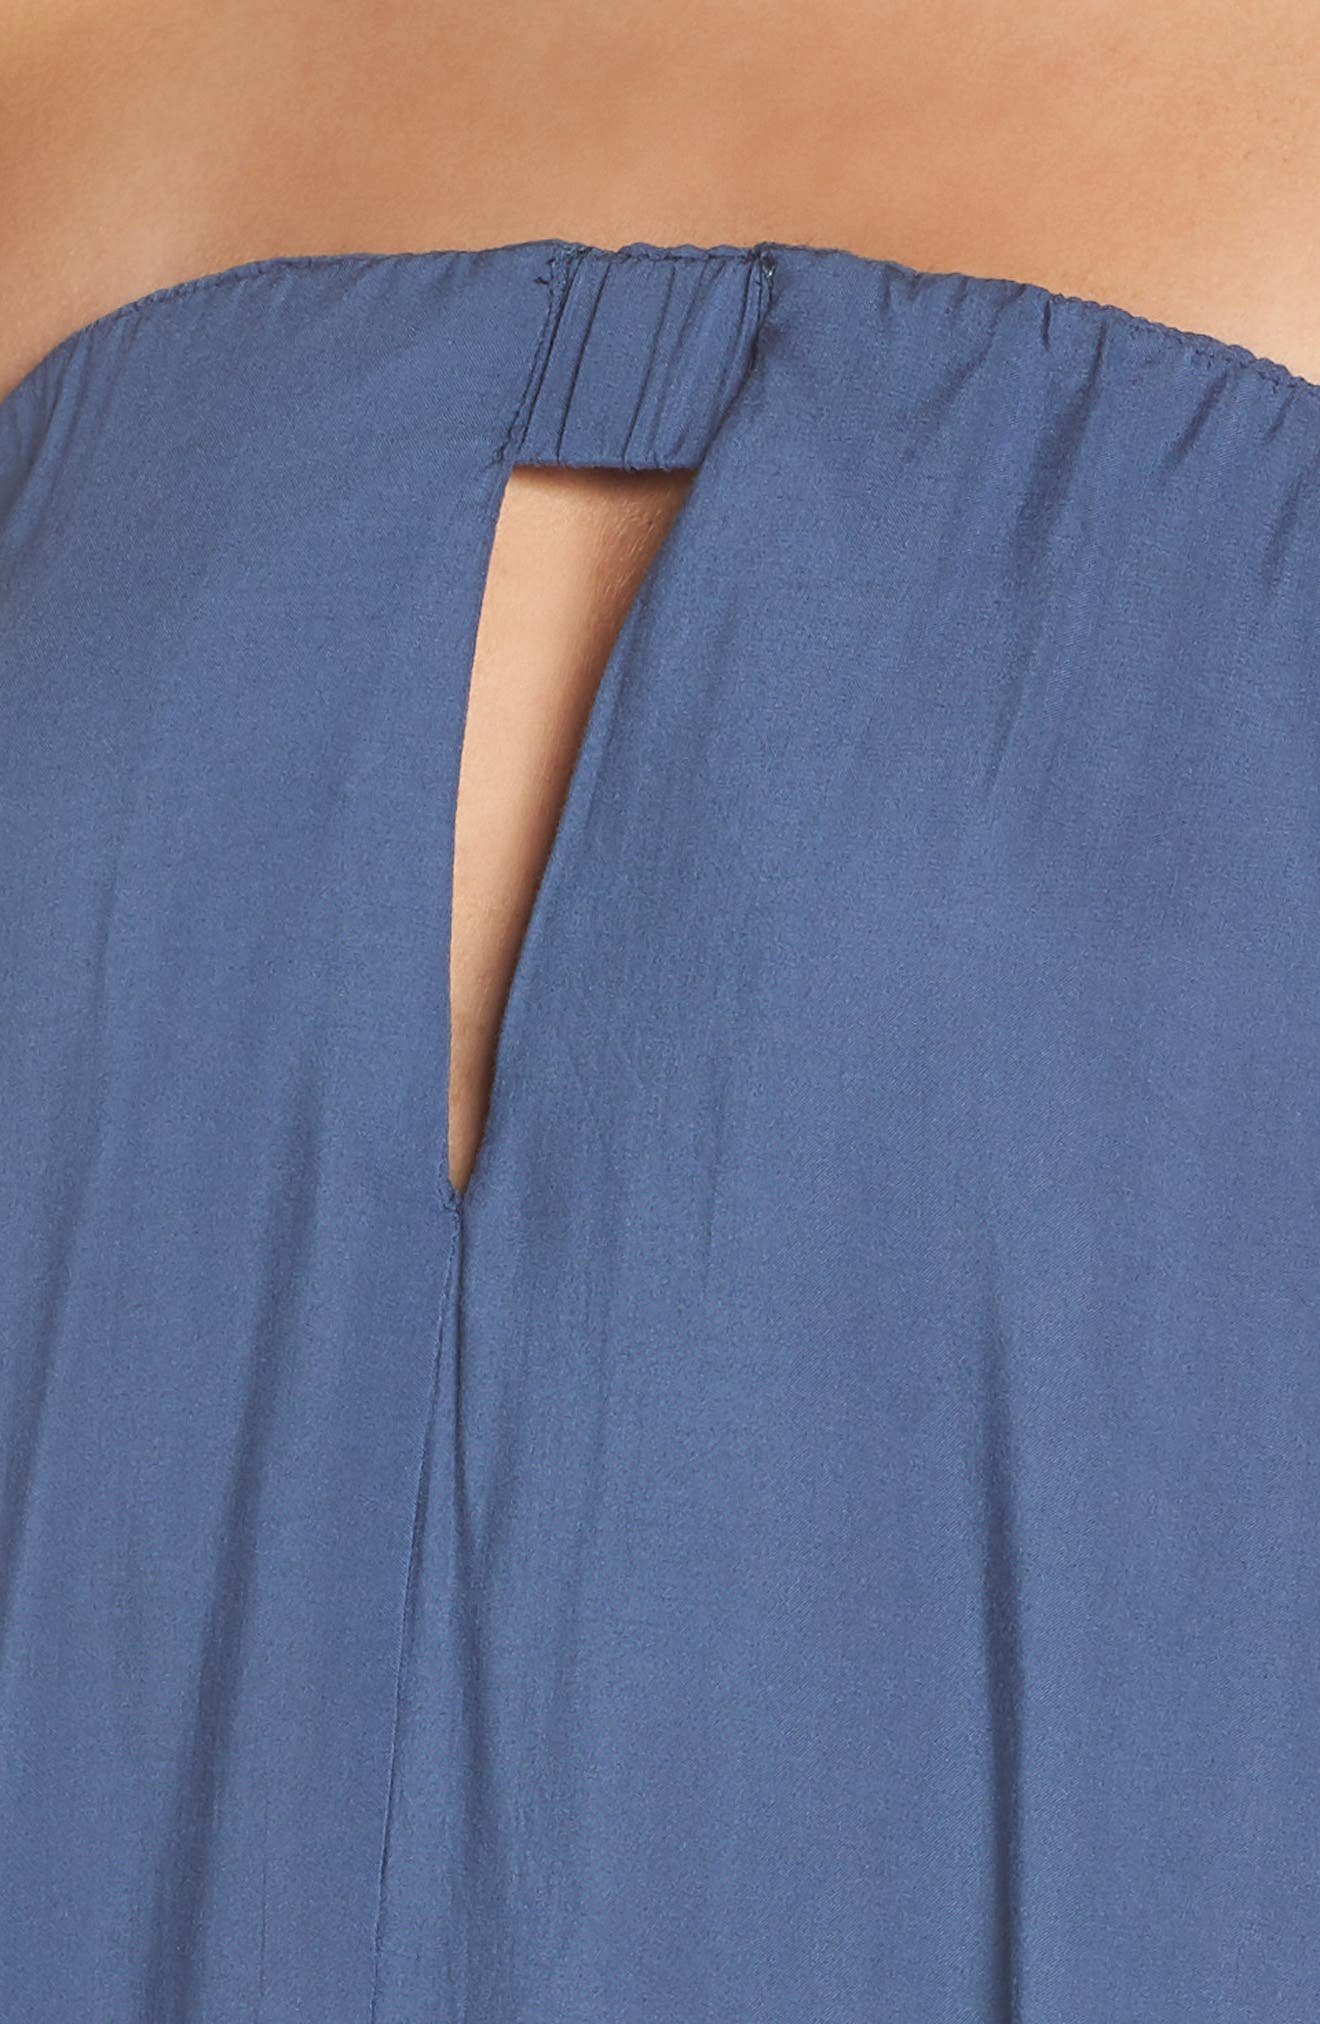 Strapless Keyhole Cover-Up Maxi Dress,                             Alternate thumbnail 4, color,                             462